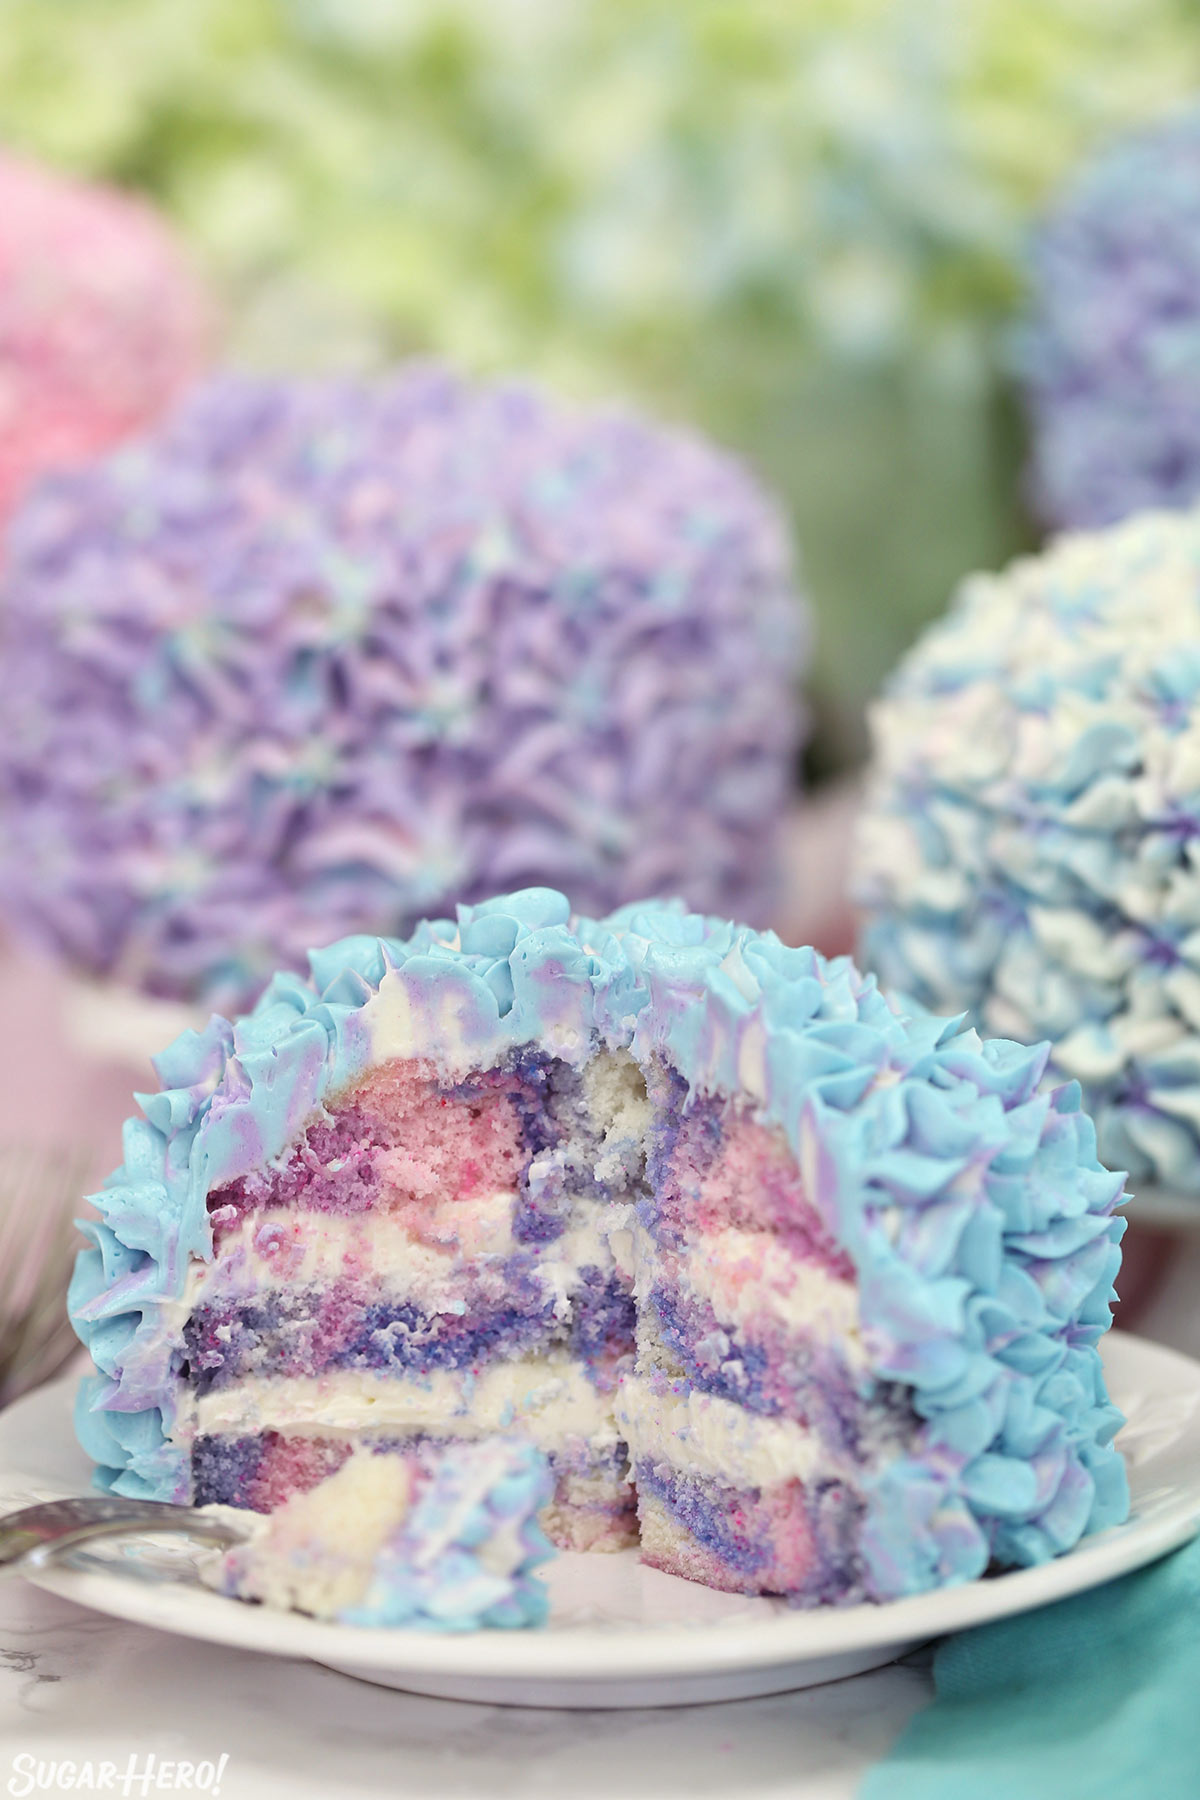 Hydrangea Cakes - A cake with bites take out showing the colorful inside. | From SugarHero.com